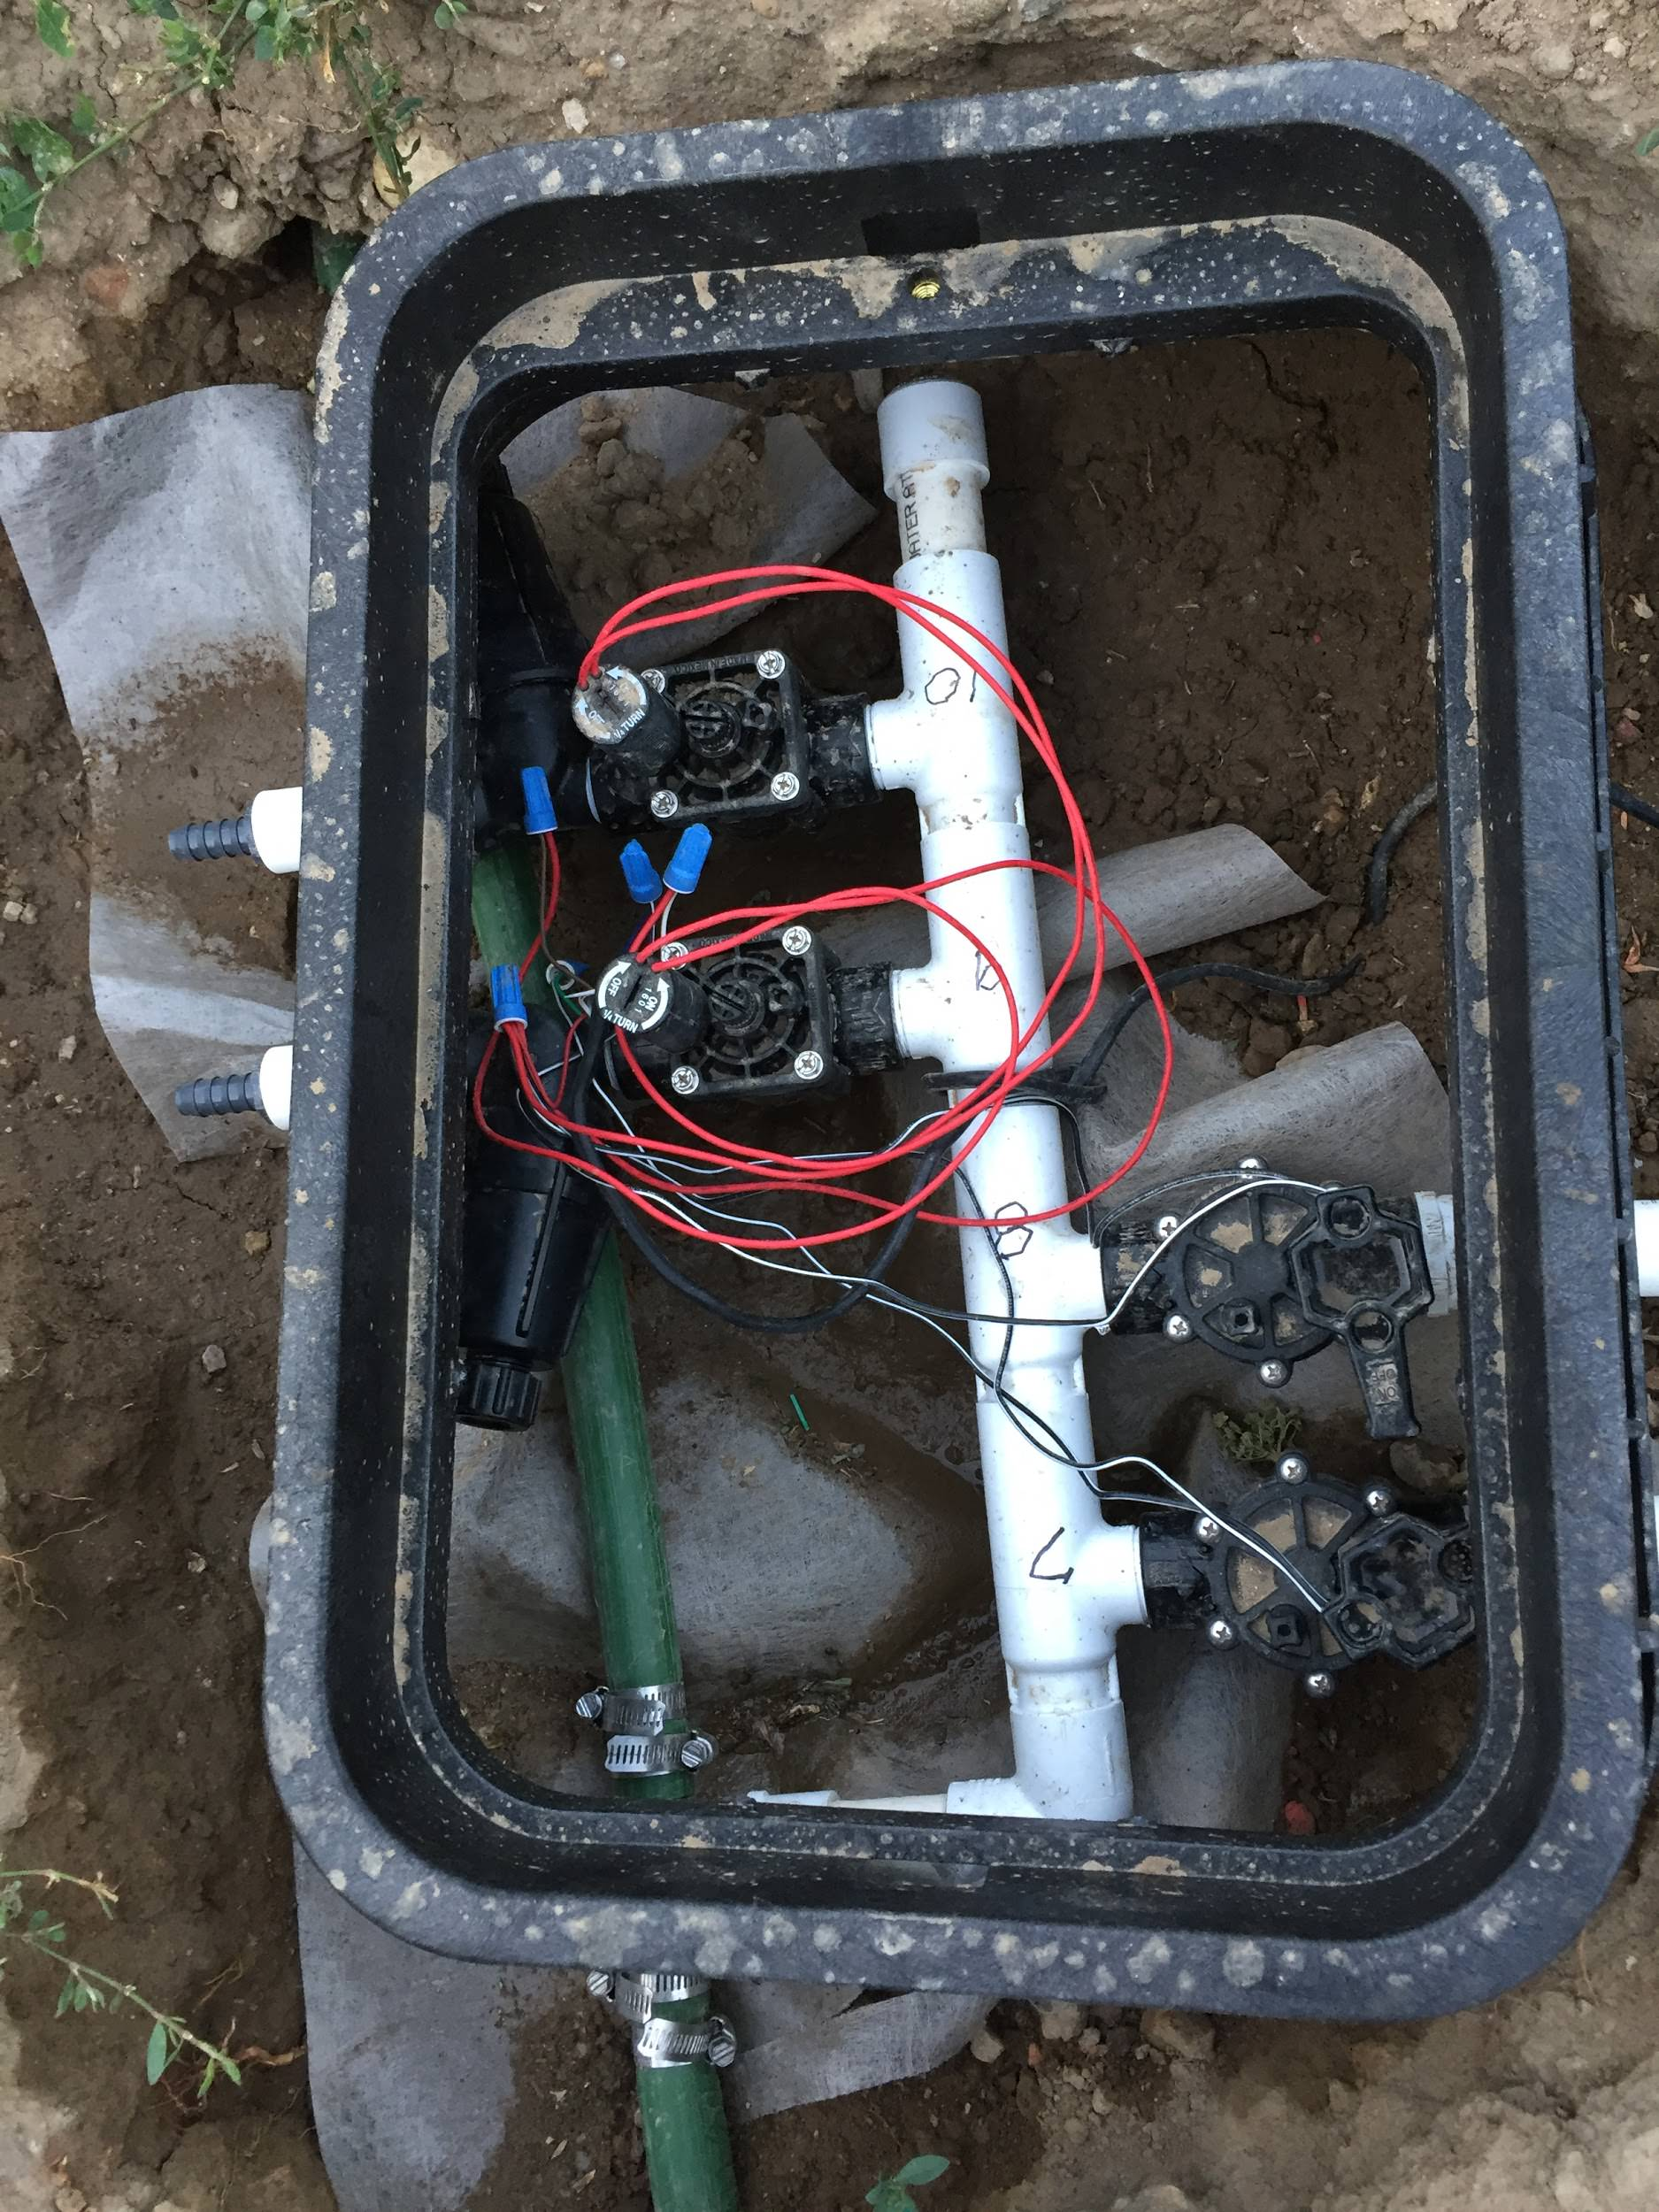 Prime How To Install A Backyard Sprinkler System On A Timer 6 Steps Wiring Digital Resources Remcakbiperorg